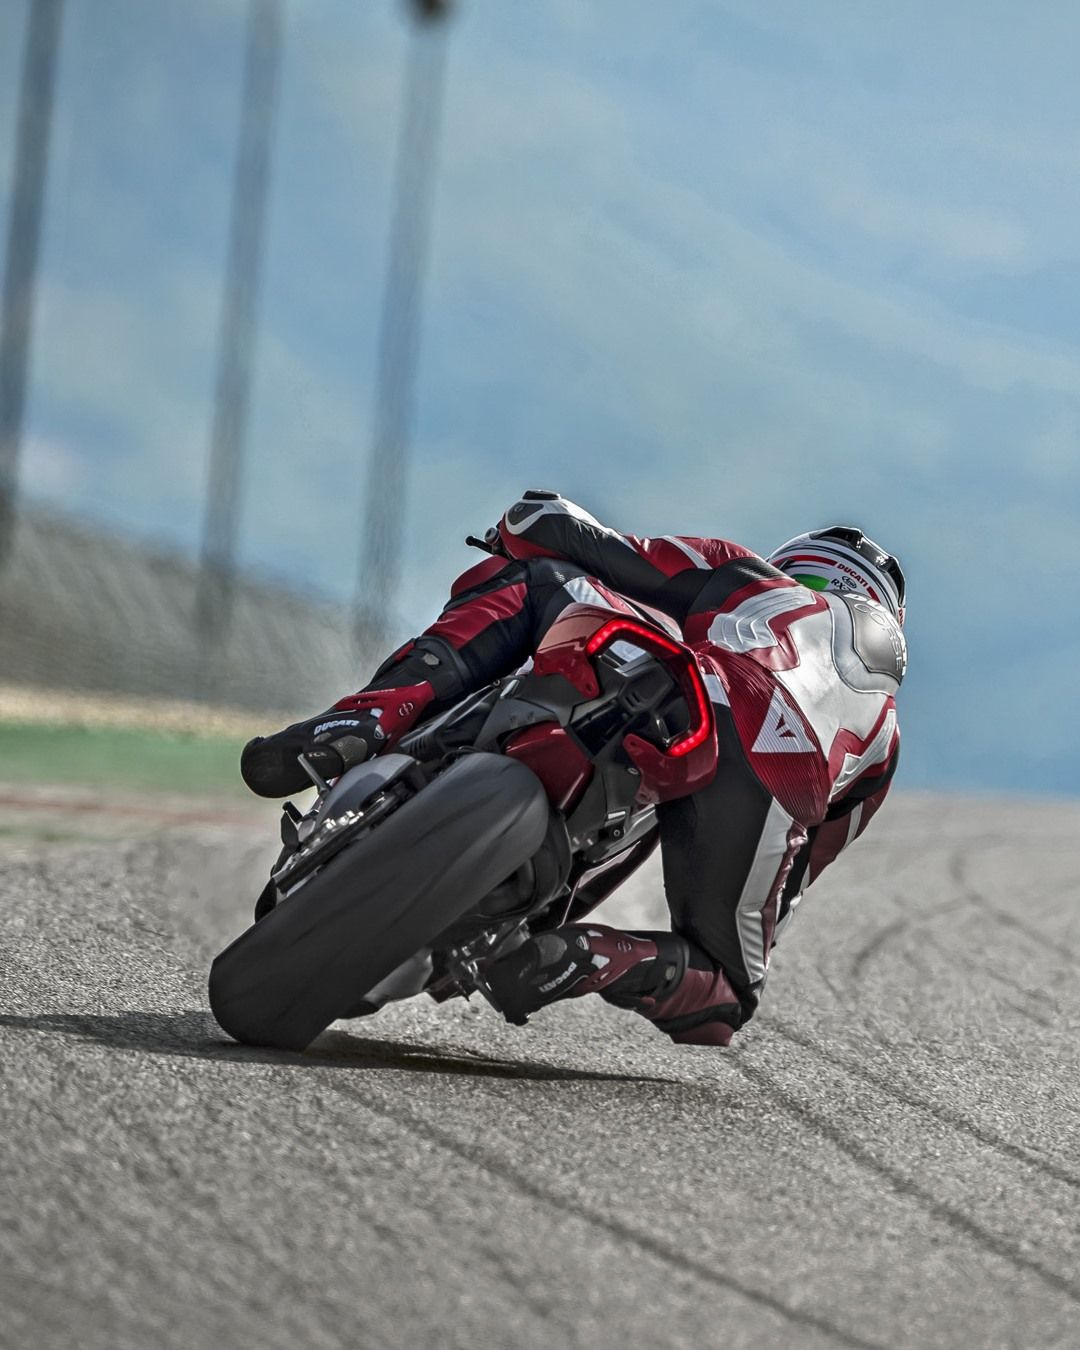 Ducati Traction Dqs Evo 2 Is Now Available Also For Panigale V4 And Panigale V4 S Derived From Ducati Motogp I In 2020 Ducati Panigale Moto Bike Racing Motorcycles